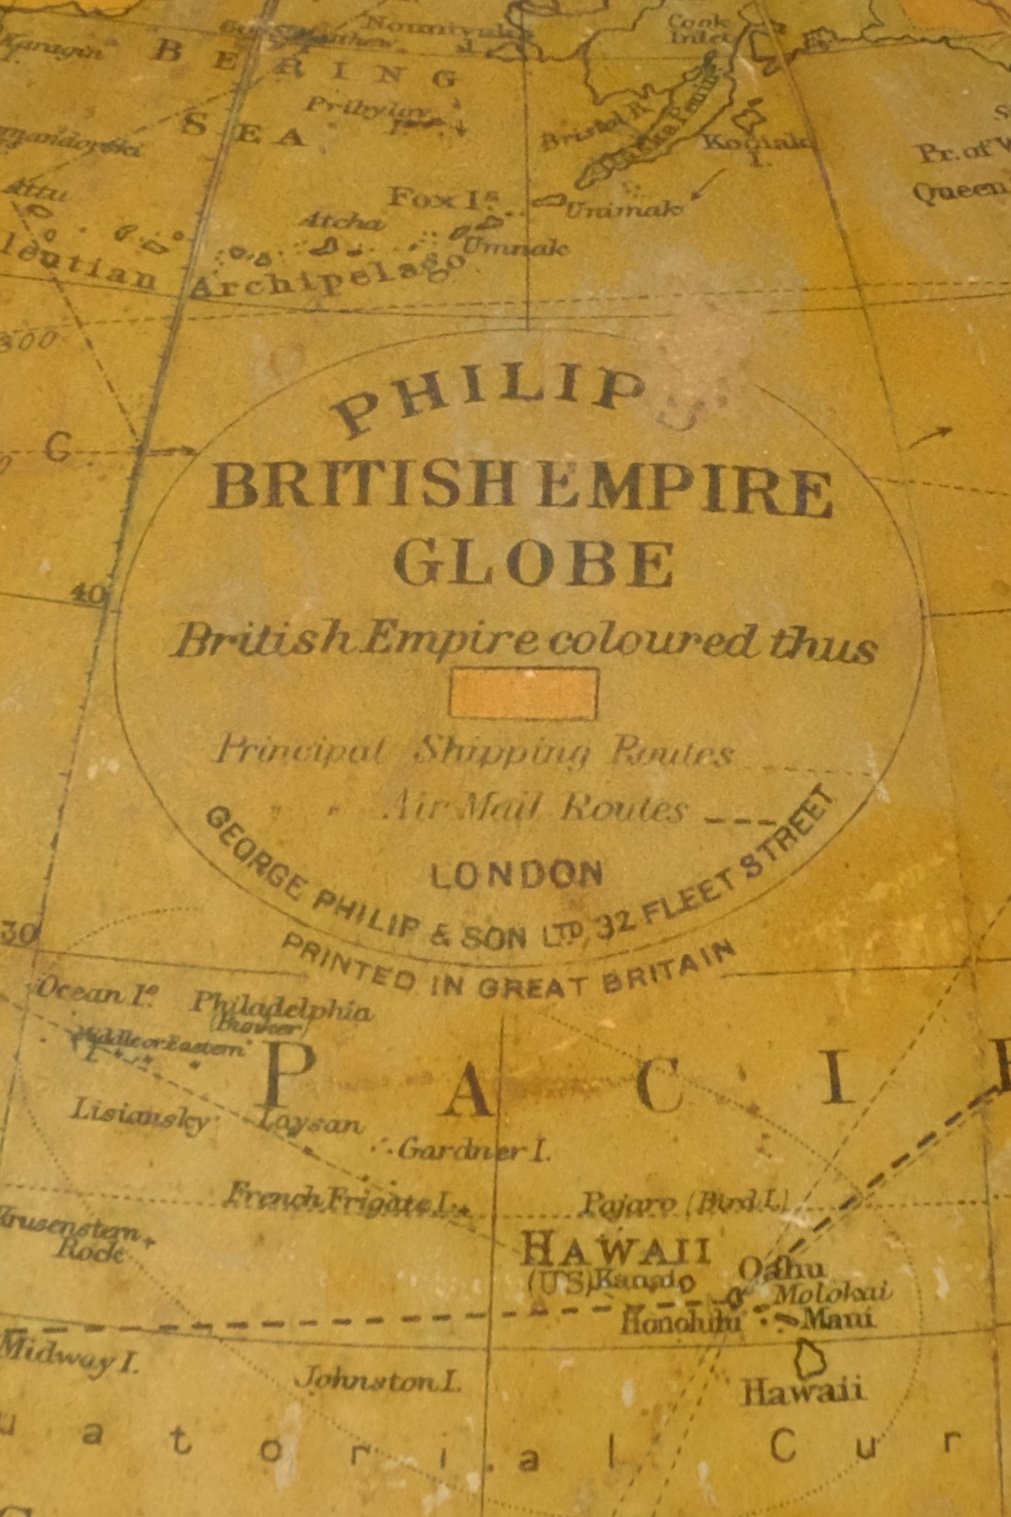 British Empire Globe